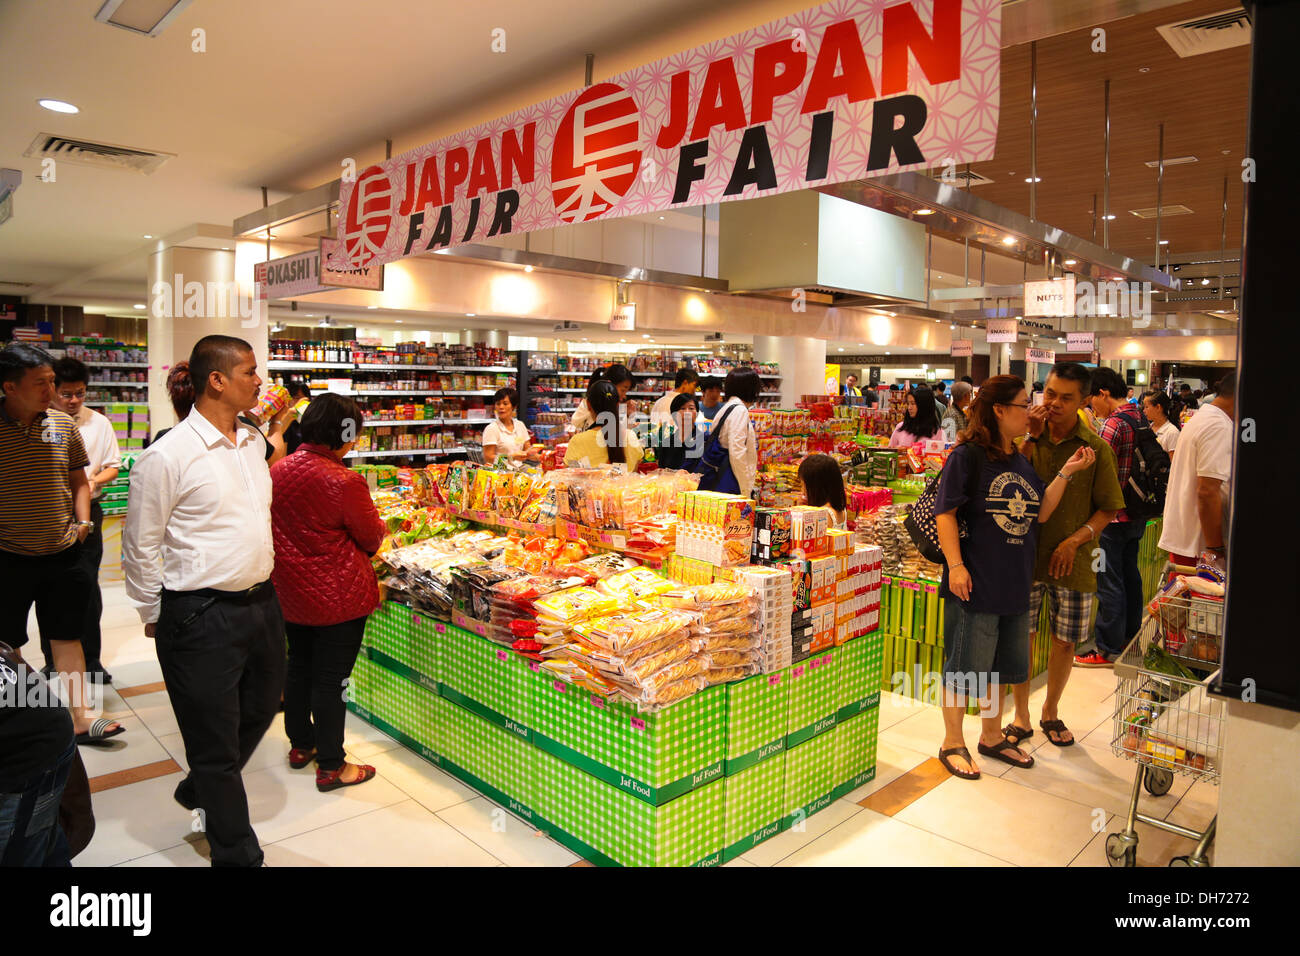 japanese food fair at a shopping market in malaysia stock